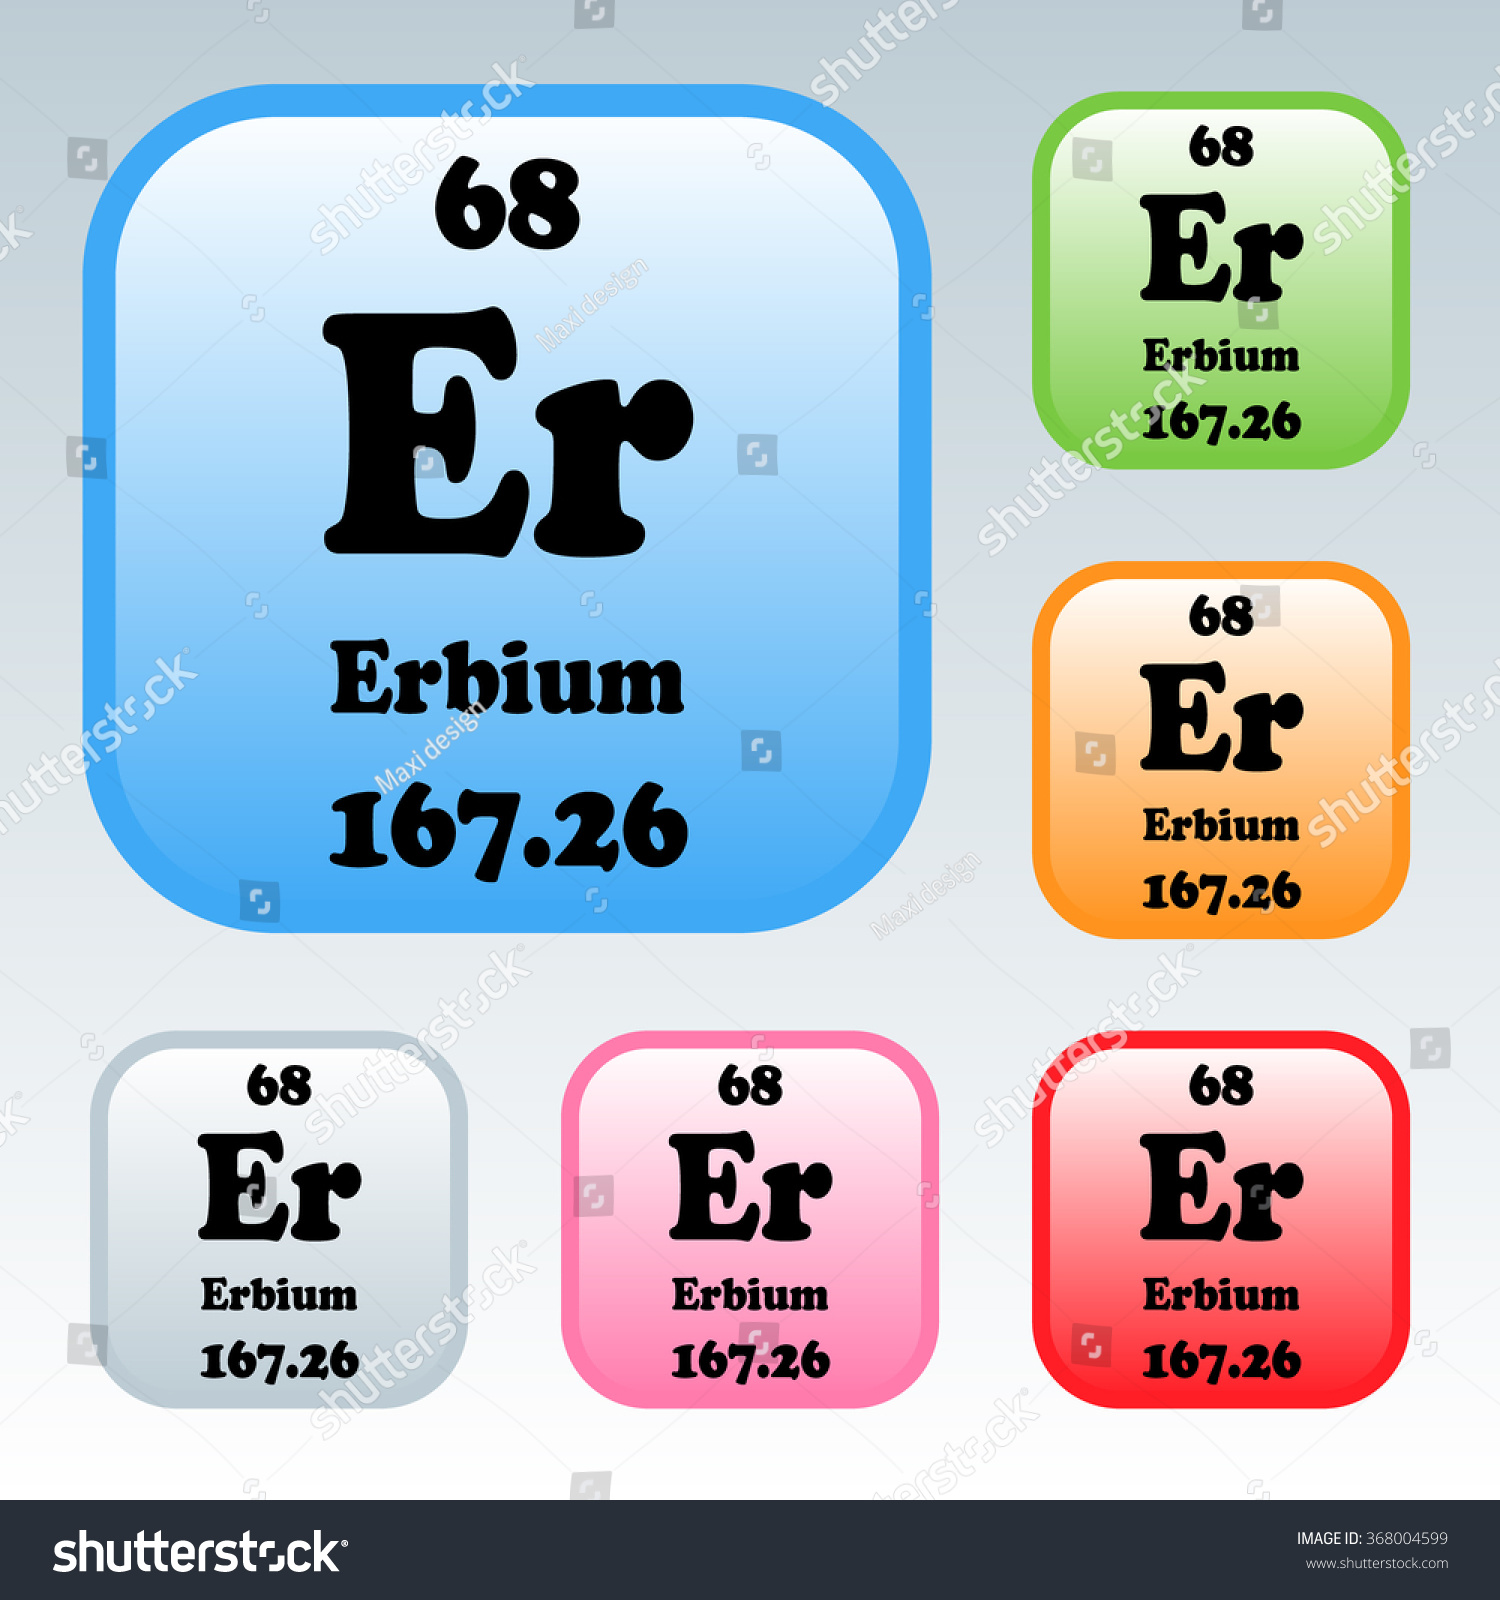 Erbium chemical element periodic table idef0 visio arrow clip art periodic table elements erbium stock vector 368004599 shutterstock stock vector the periodic table of the elements gamestrikefo Image collections